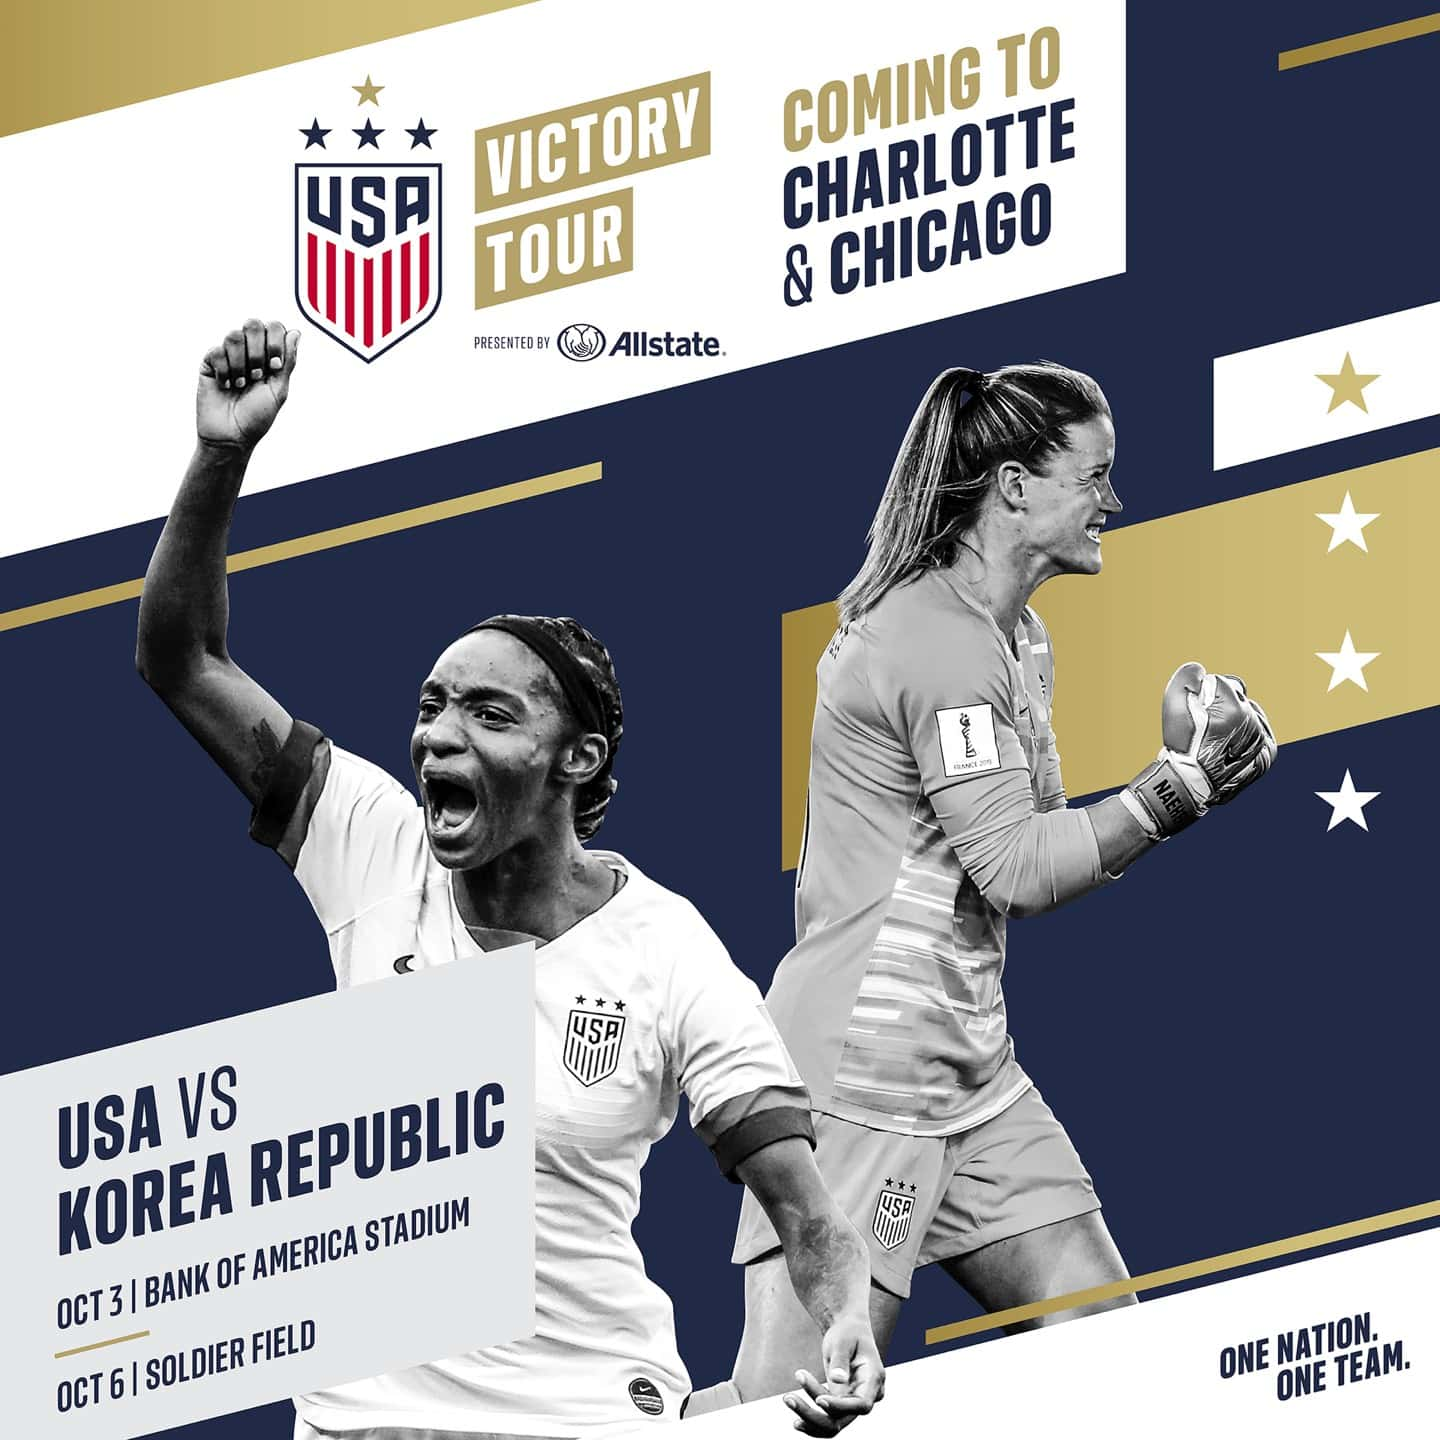 World Champion U.S. Women's National Team To Play In Charlotte, N.C. And Chicago In Last Two Games Of Victory Tour Presented By Allstate